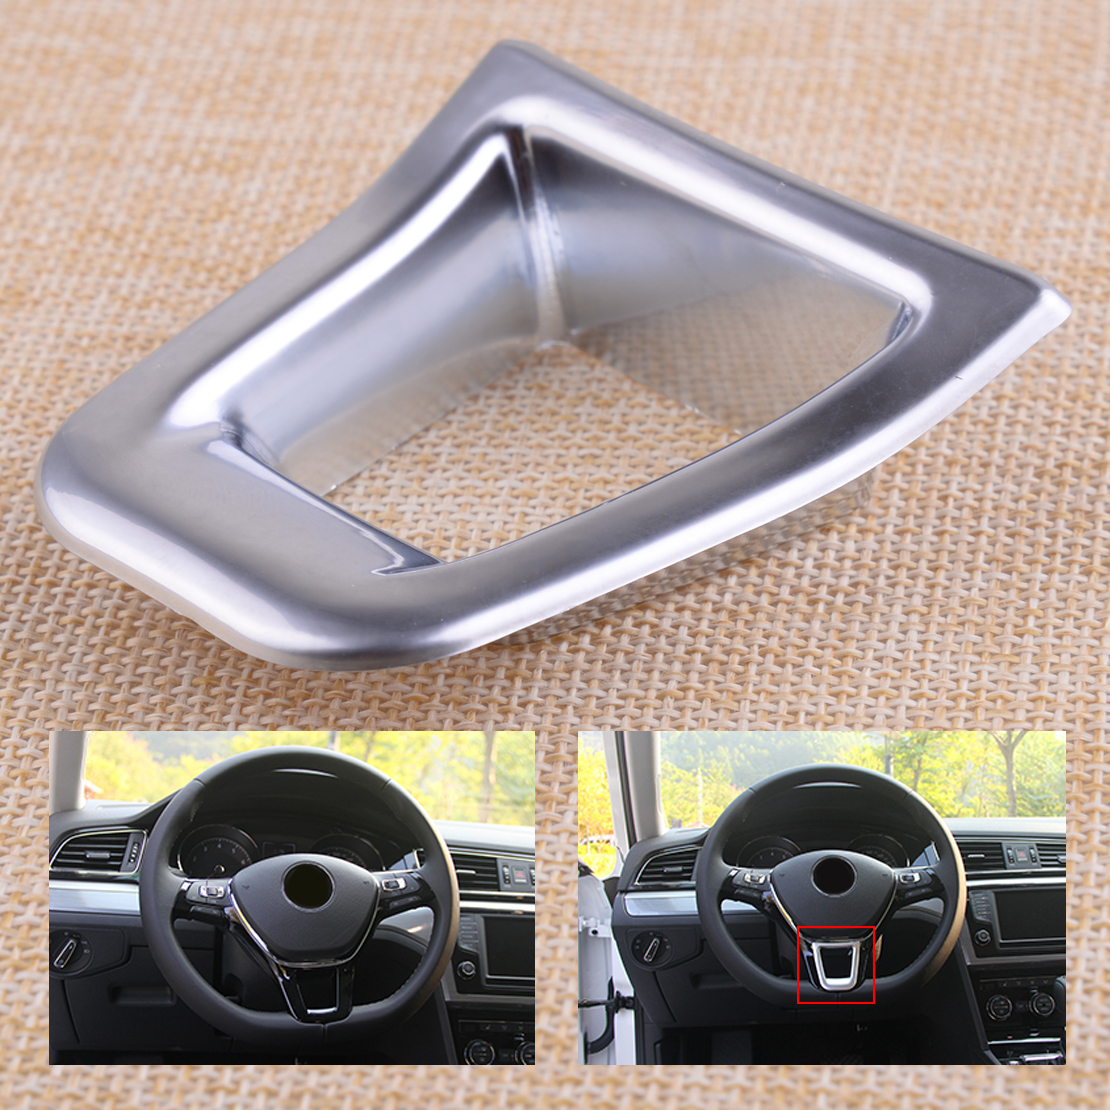 beler Chrome Plated Steering Wheel Trim Cover Sticker Car-accessories Fit for VW GOLF MK7/JETTA MK5 MK6 2015 image